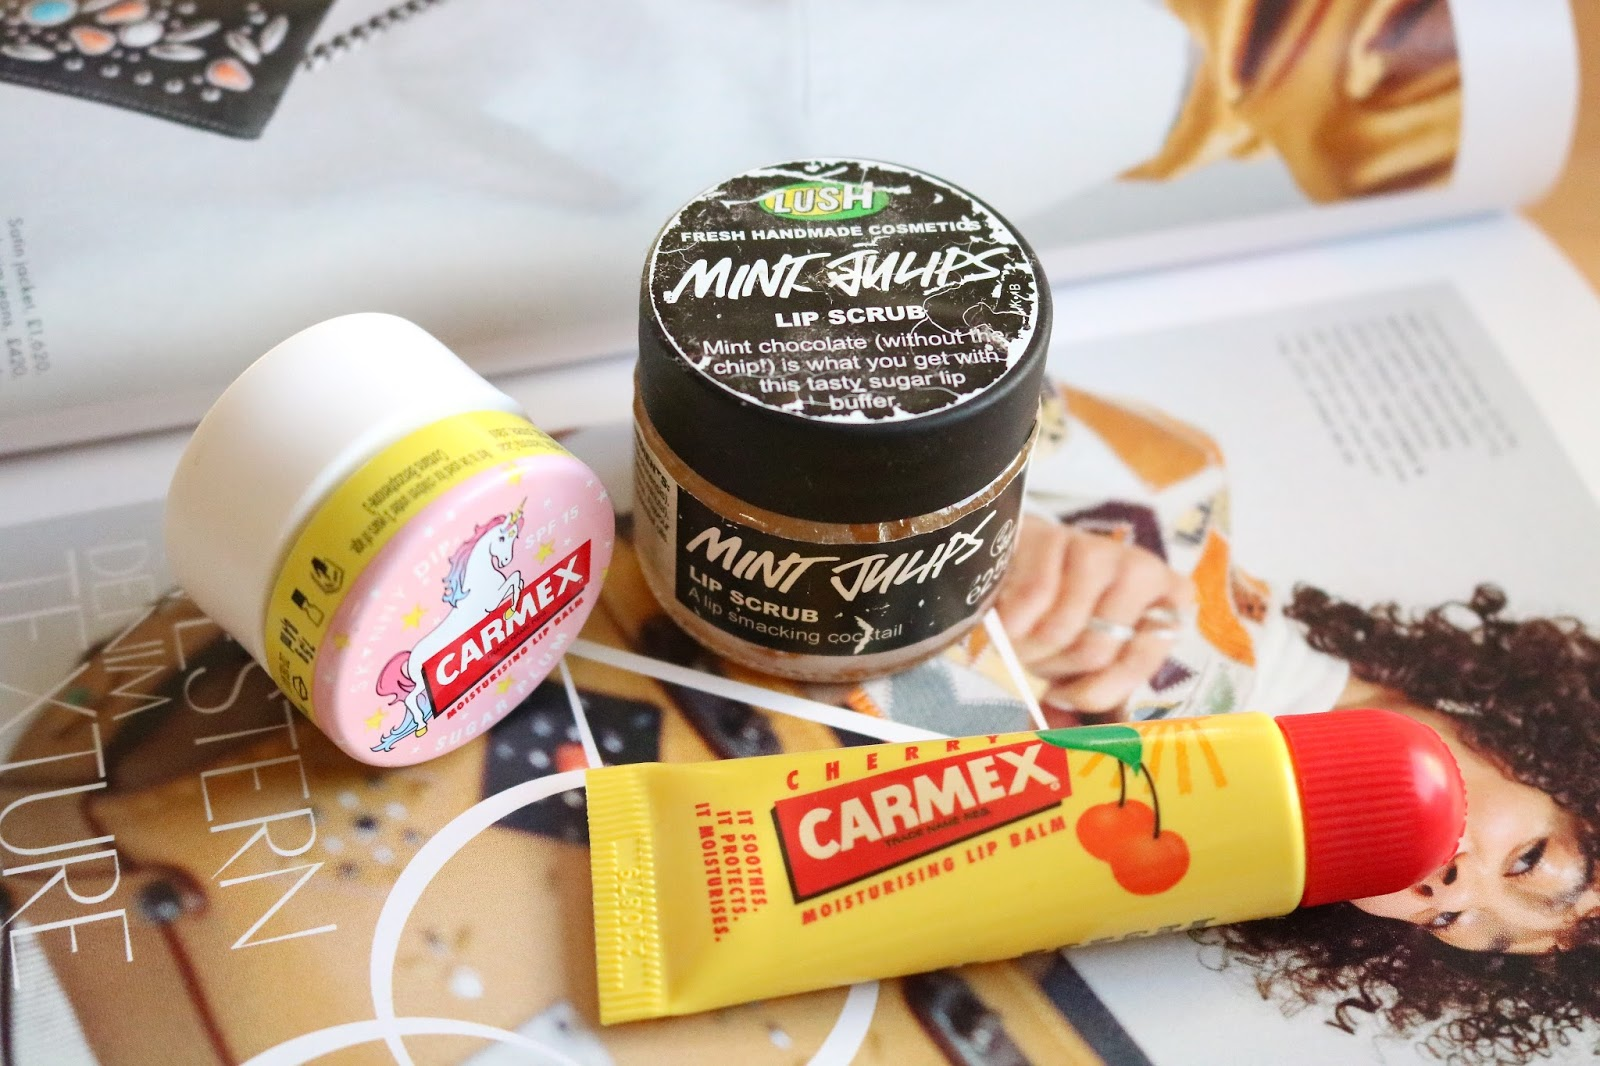 lush mint julips lip scrub, carmex cherry tube and carmex sugar plum lip balm